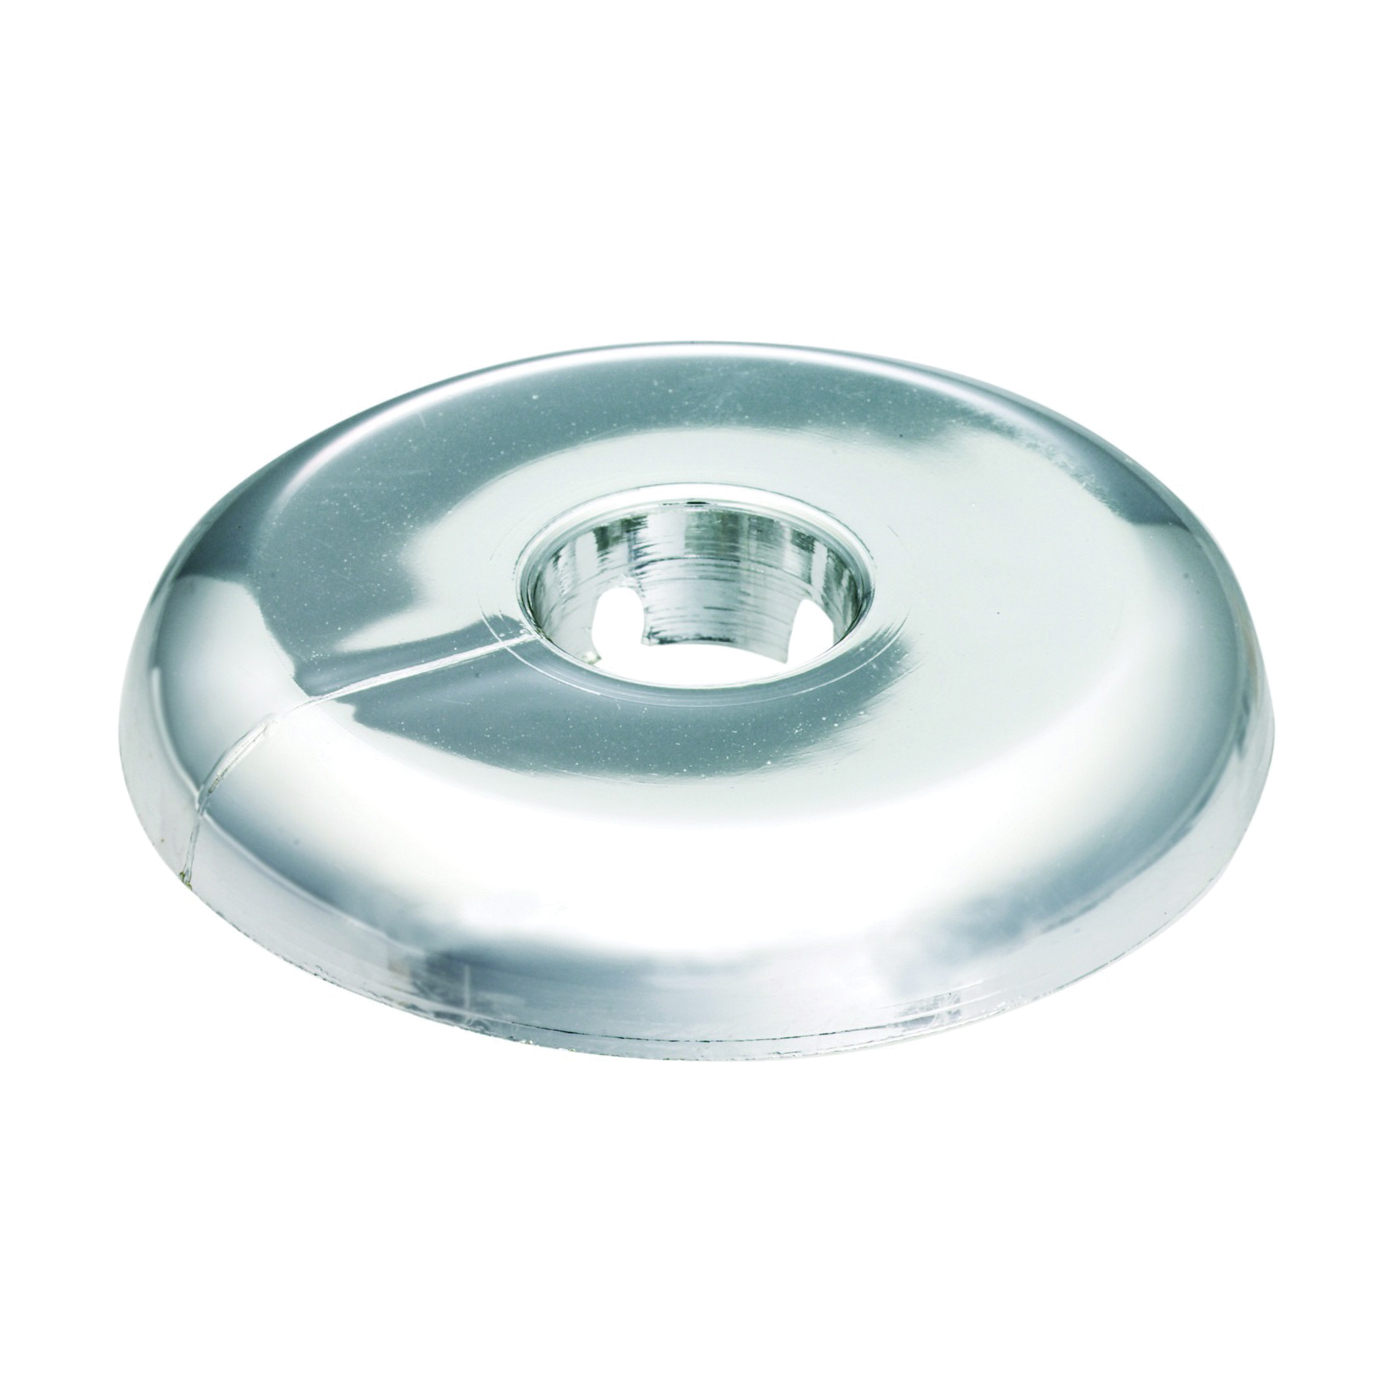 Picture of Plumb Pak PP811-12 Floor and Ceiling Plate, 4-3/4 in W, Plastic, Chrome